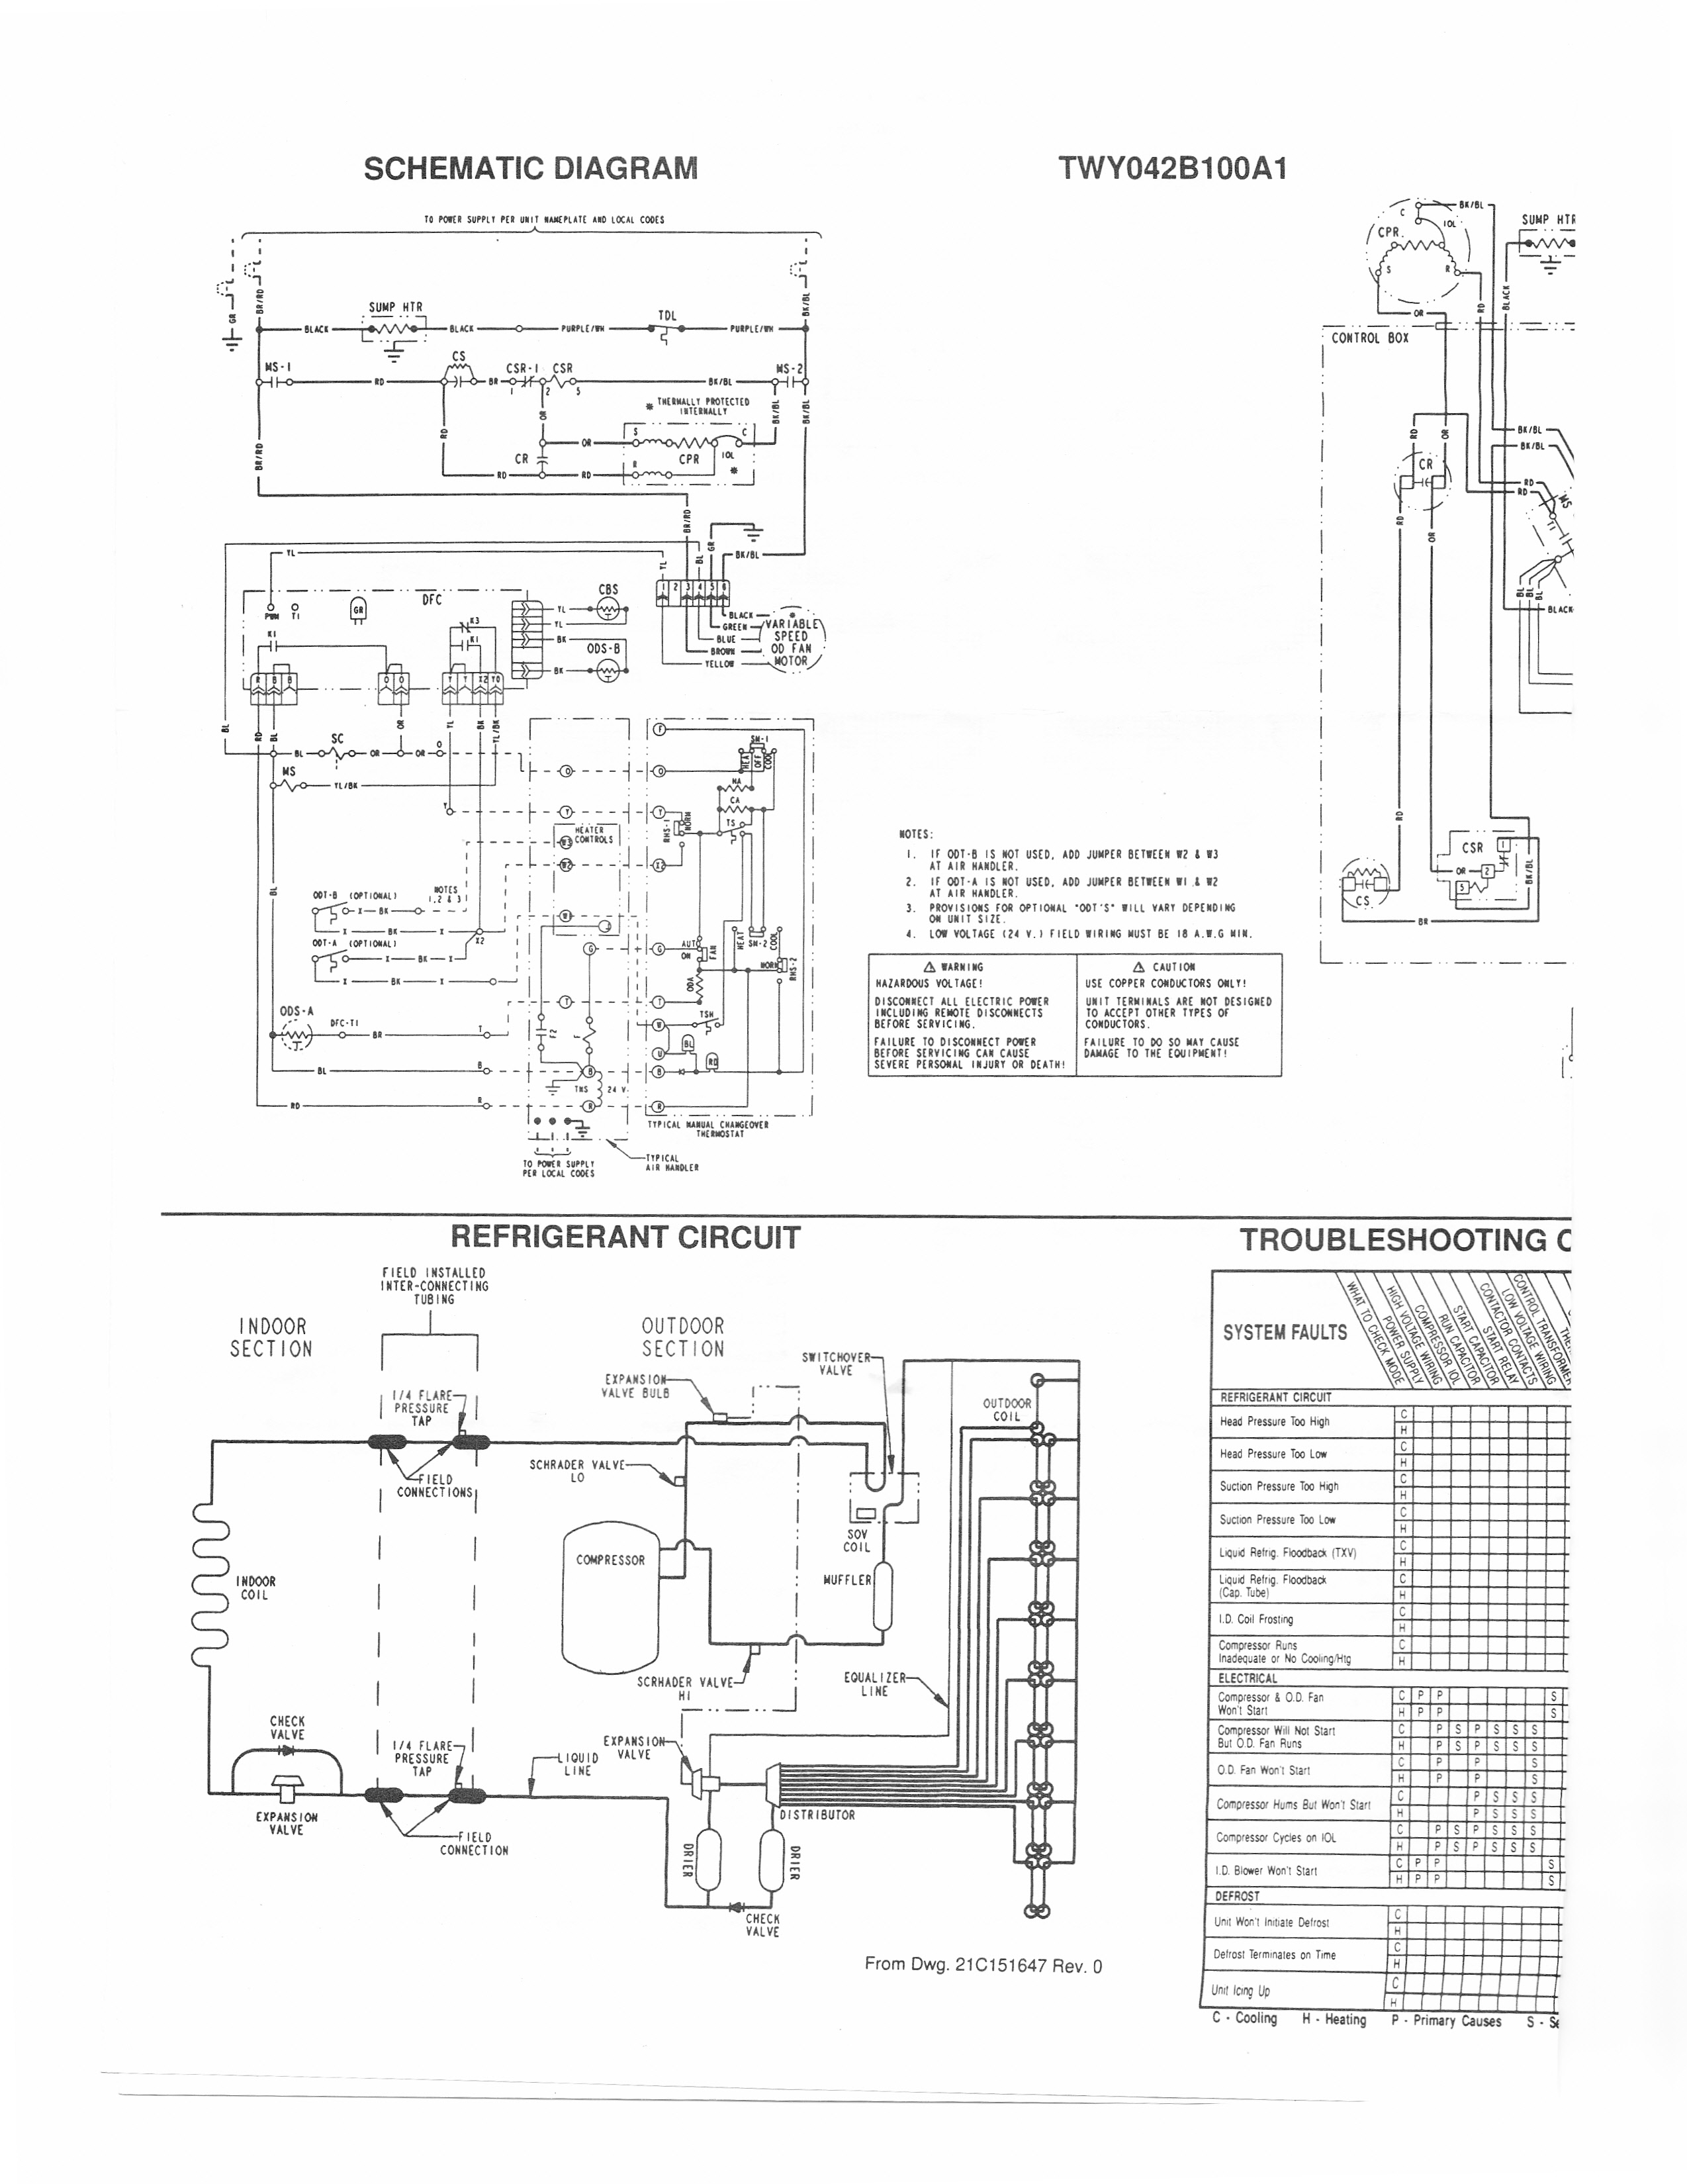 hvac heat pump wiring diagram Download-Trane Air Conditioner Wiring Schematic Handler Diagram For Solidfonts New Heat Pump And Thermostat For Trane Wiring Diagram 16-j